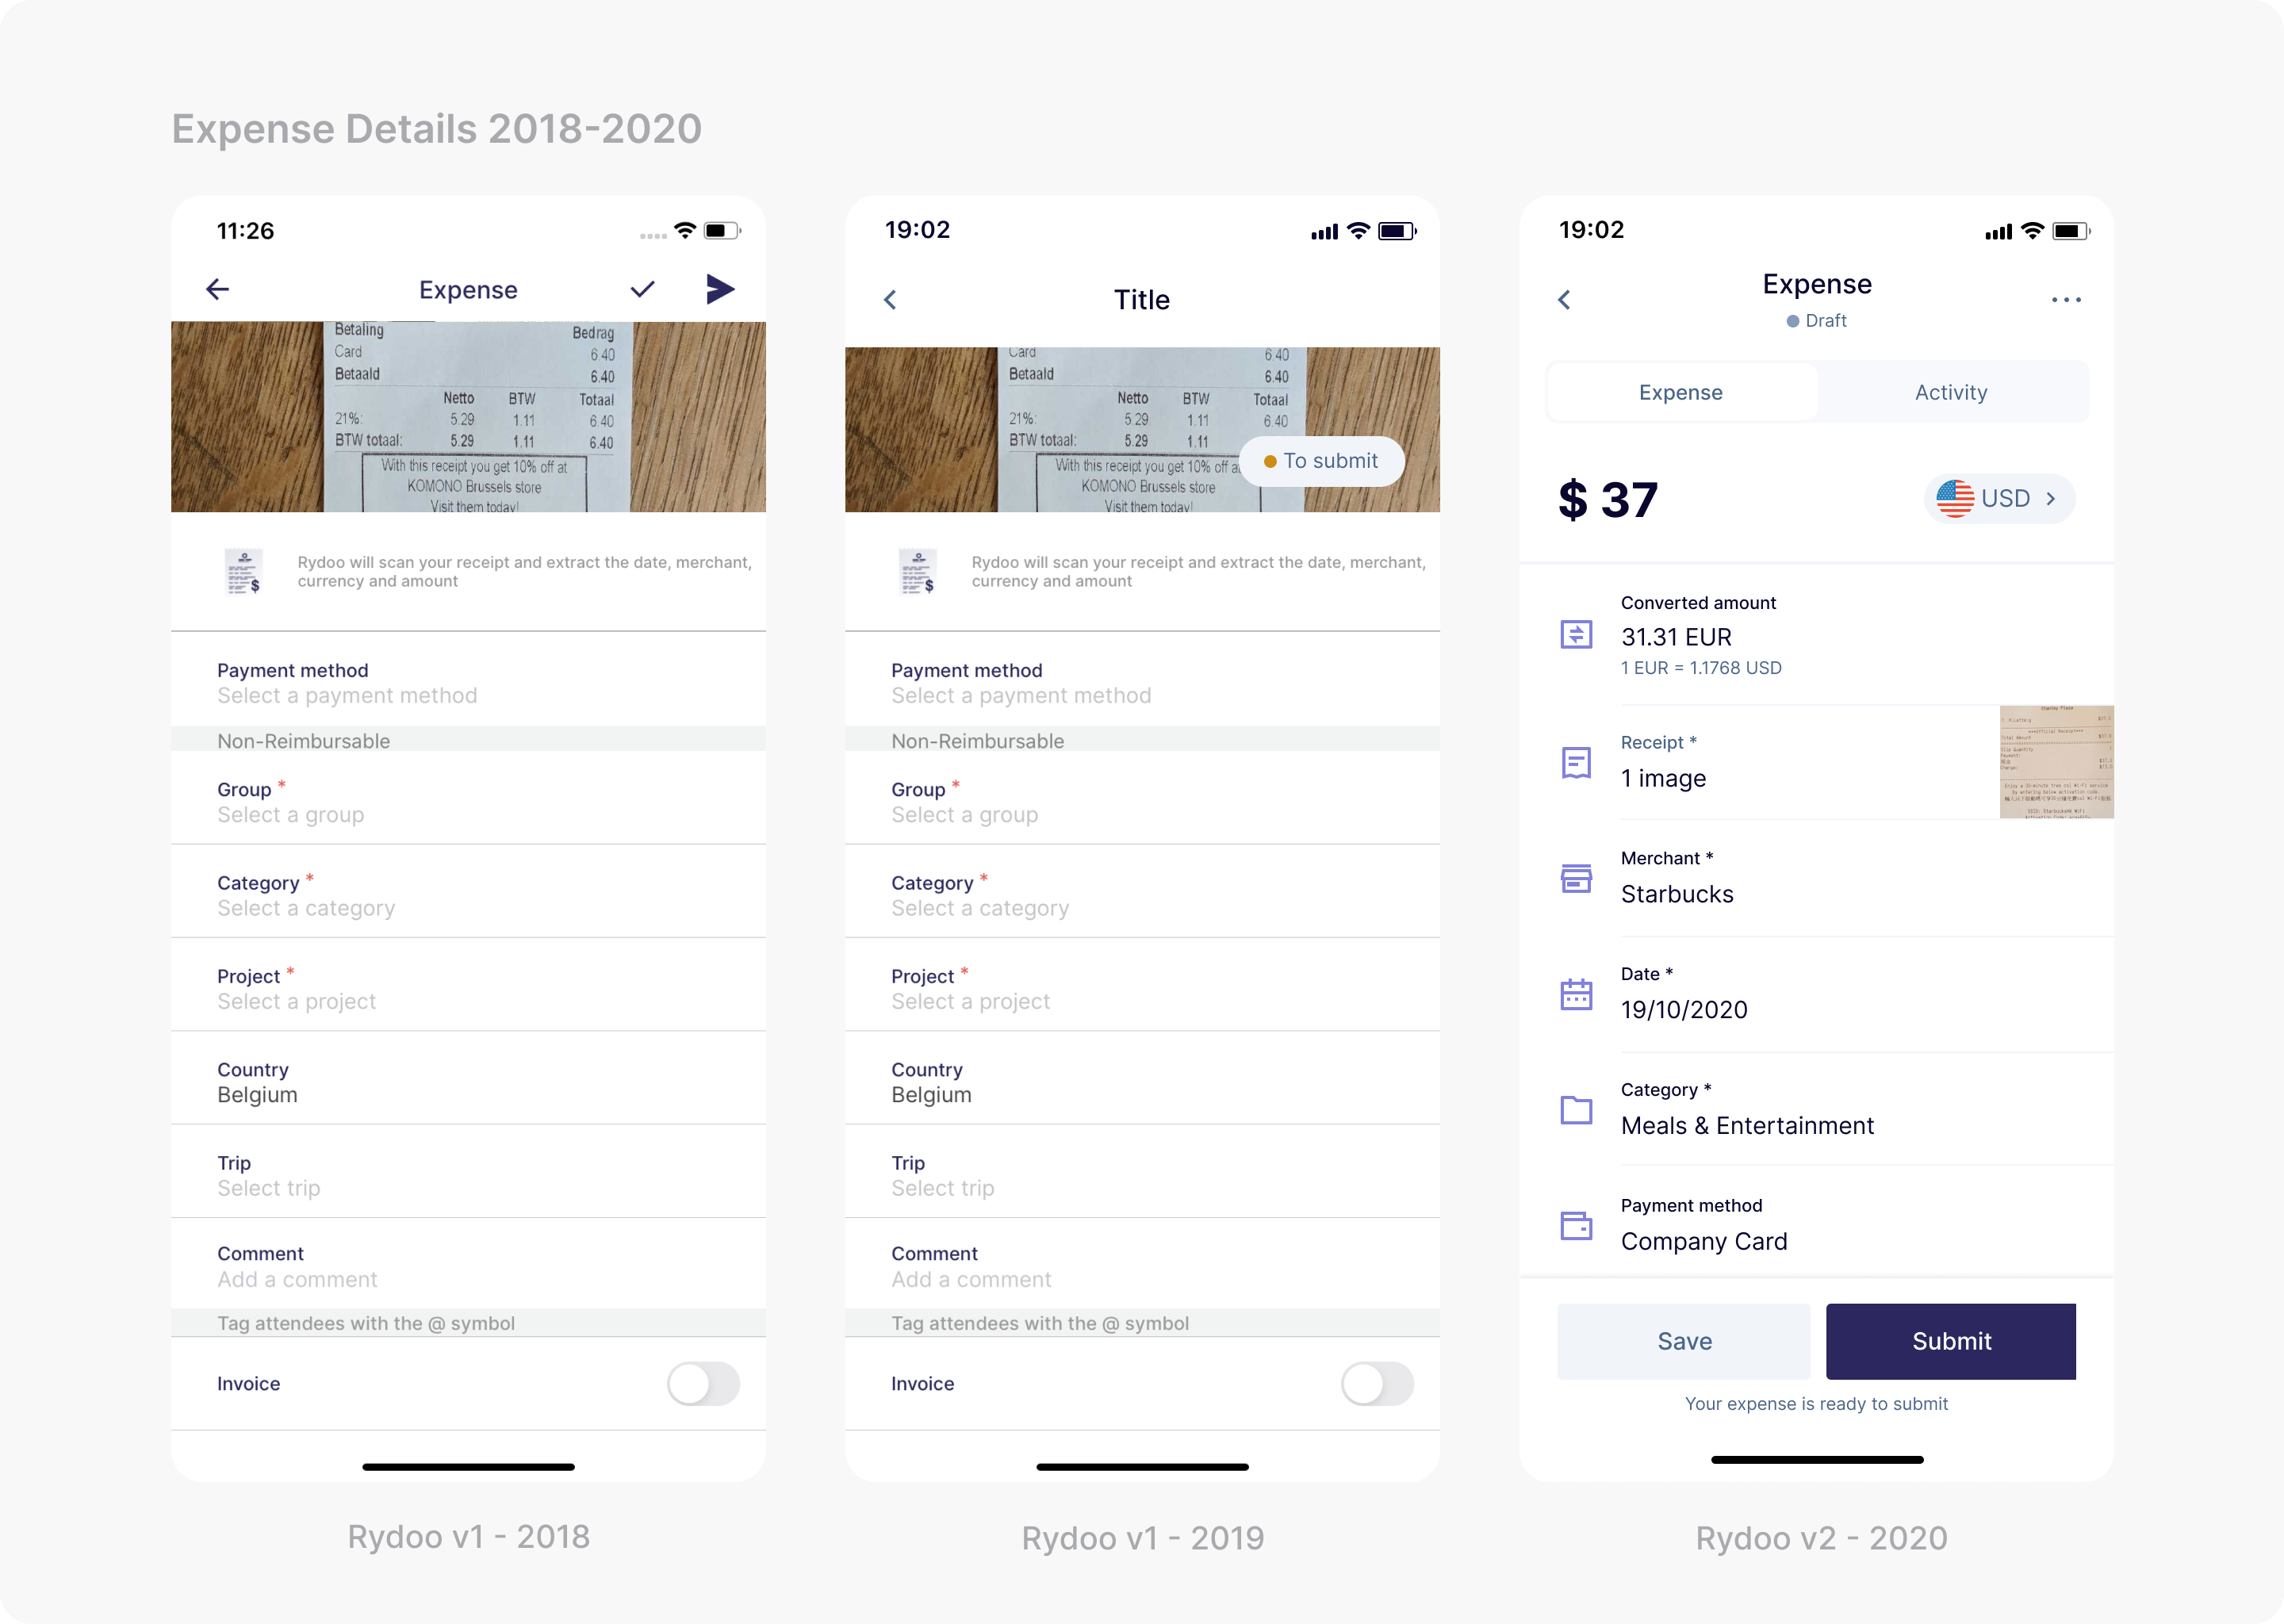 Three mobile screenshots showcasing the expense details from 2018 to 2020